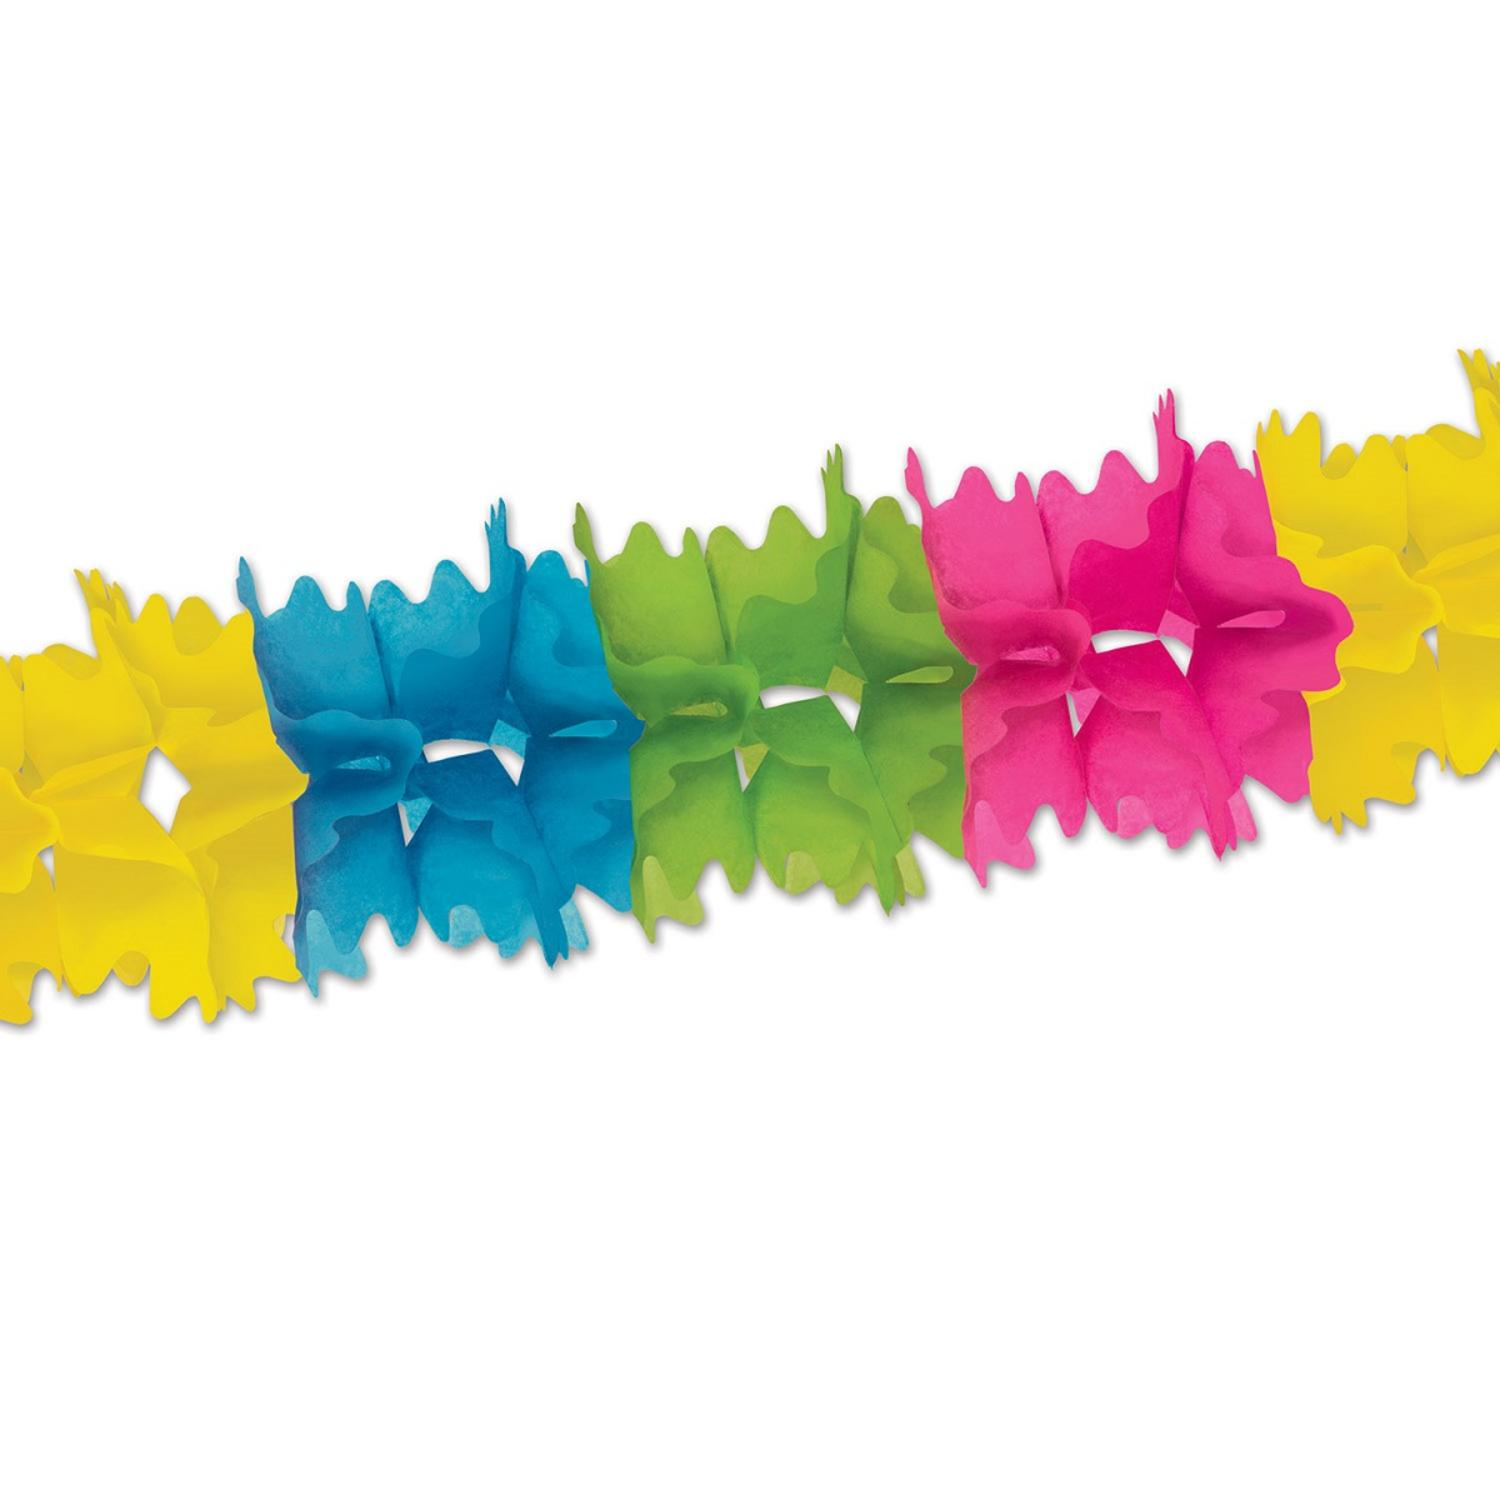 Club Pack of 12 Packaged Neon Rainbow Festive Pageant Garland Decorations 14.5'